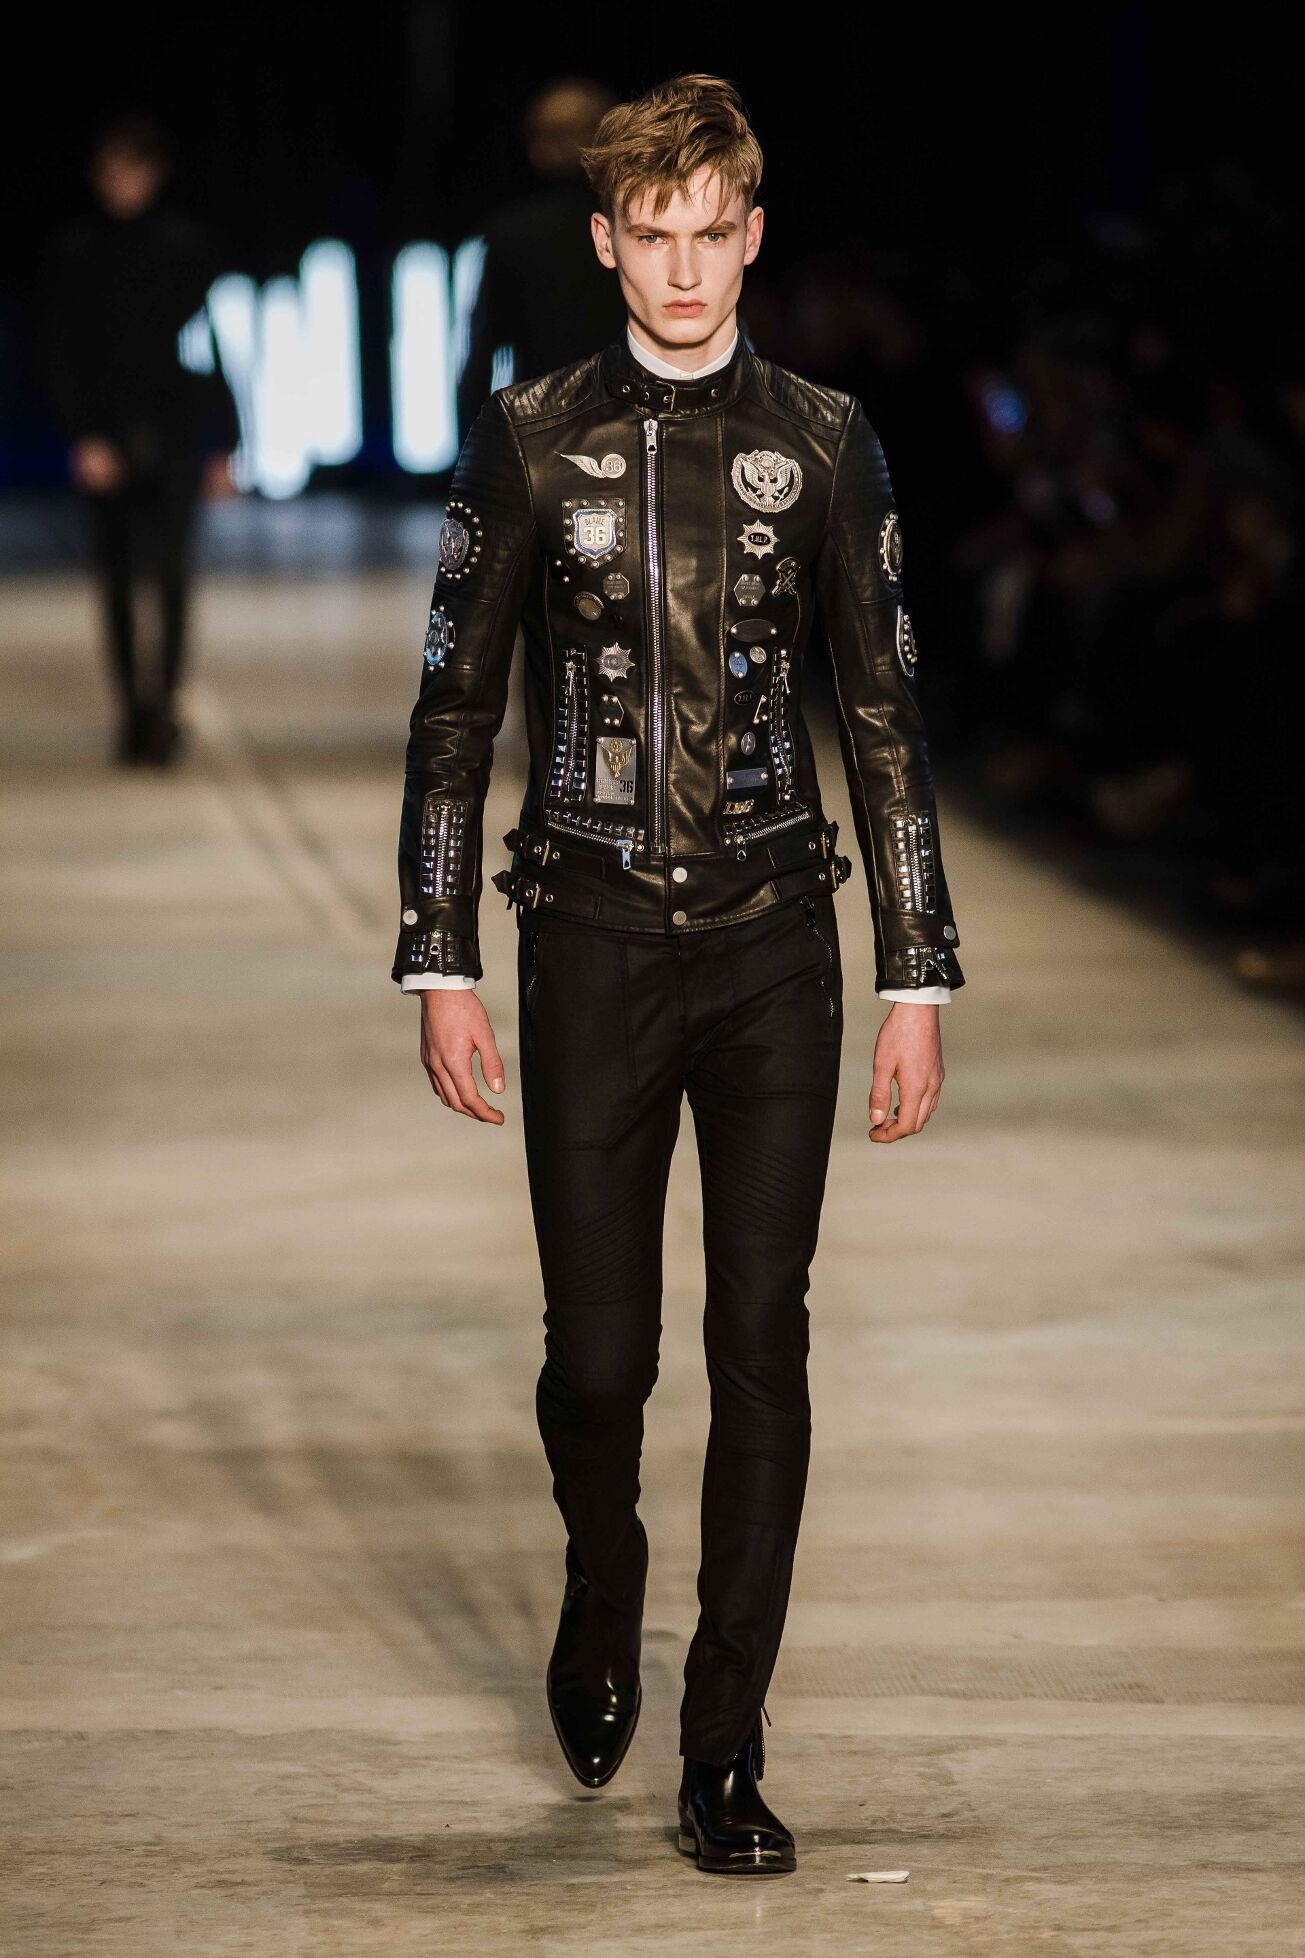 Winter Diesel Black Gold Trends 2014 Man